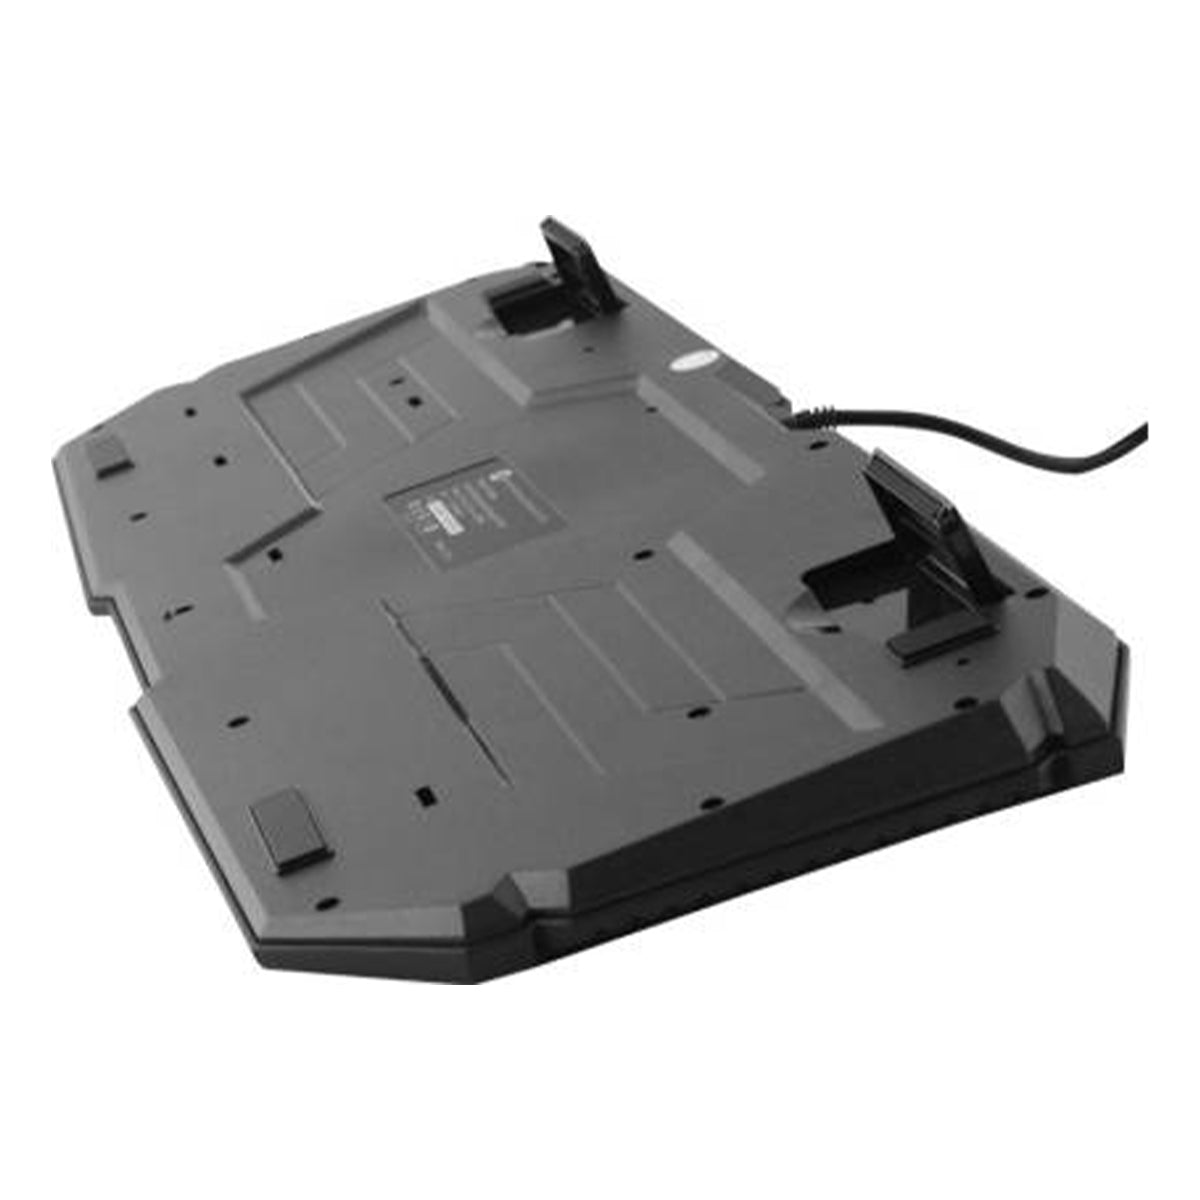 gk1000-gaming-keyboard-and-mouse